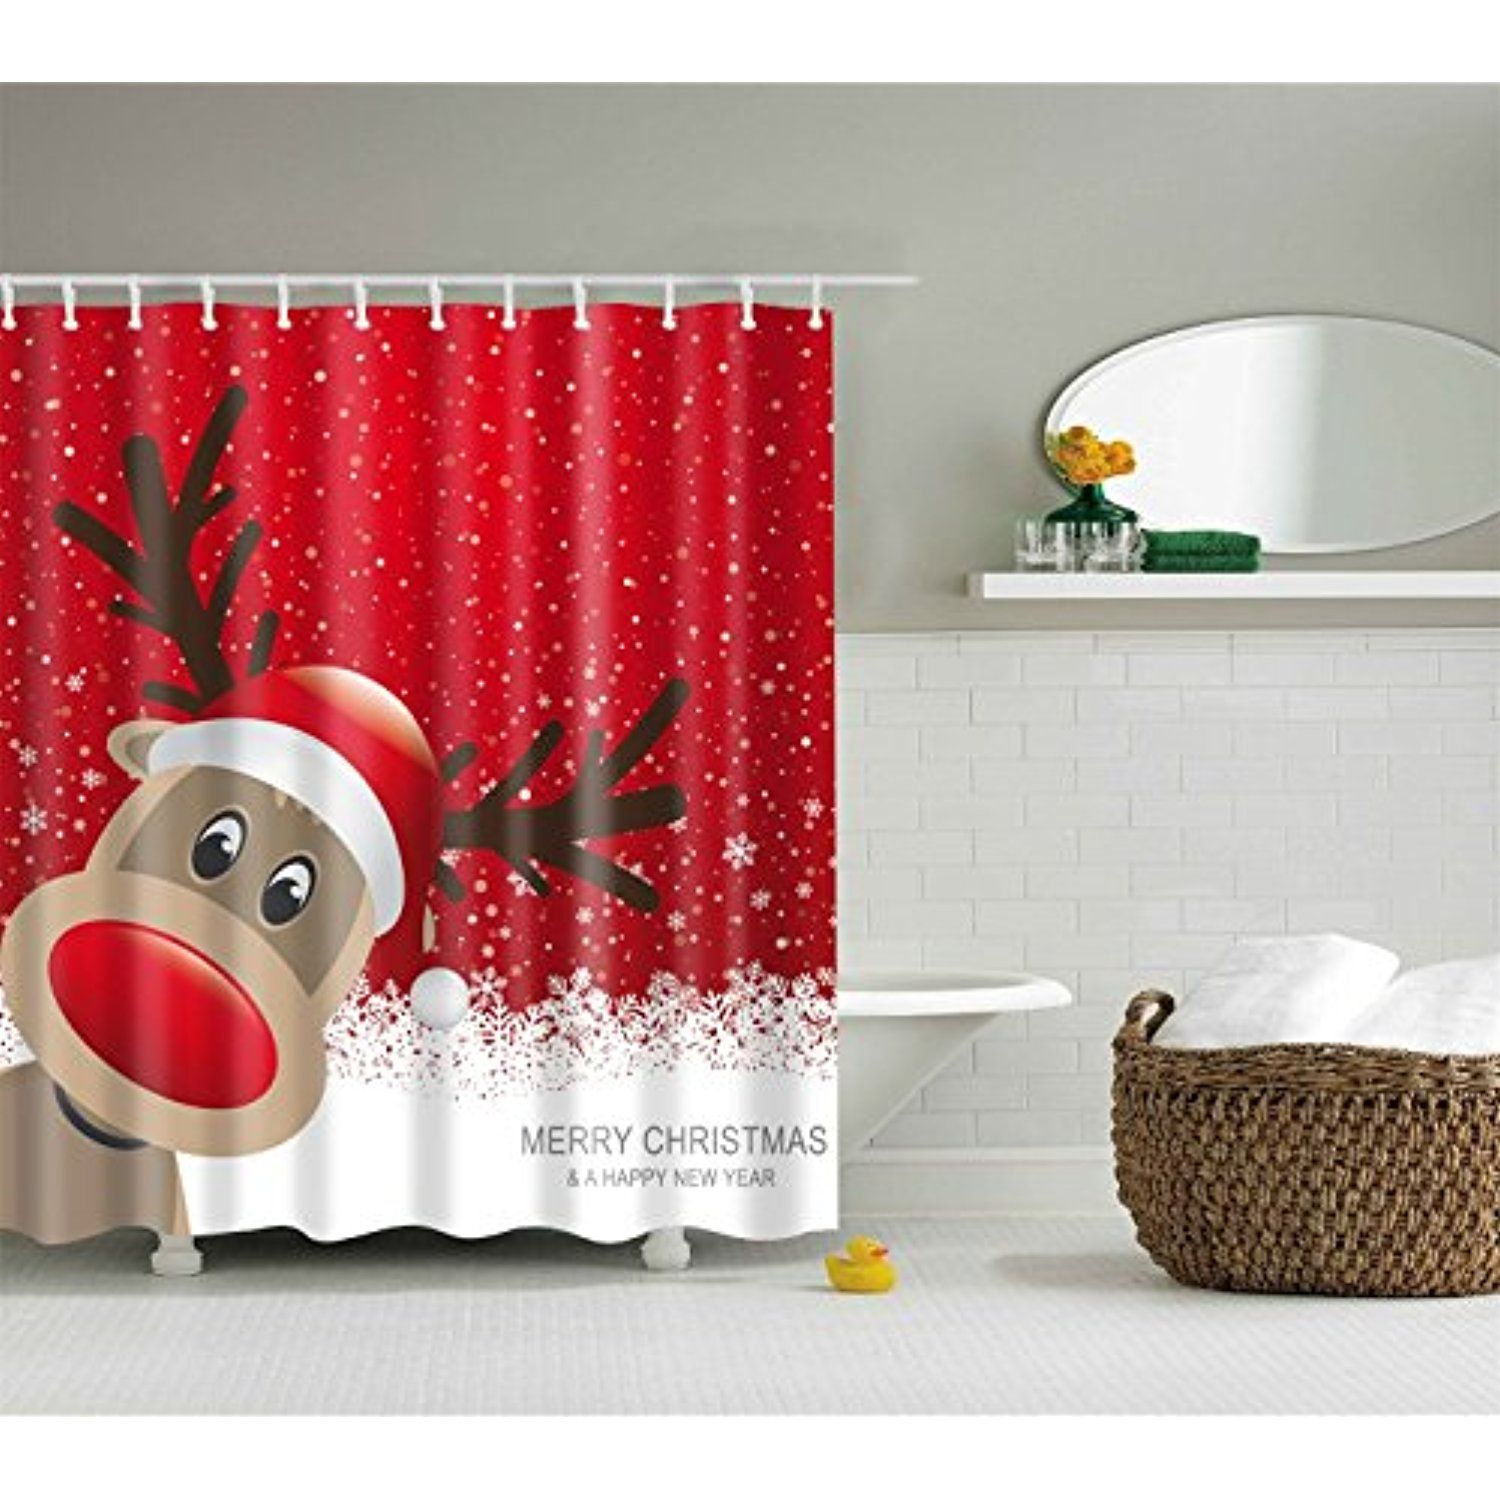 Merry Christmas Bathroom Shower Curtain Decor Art Prints